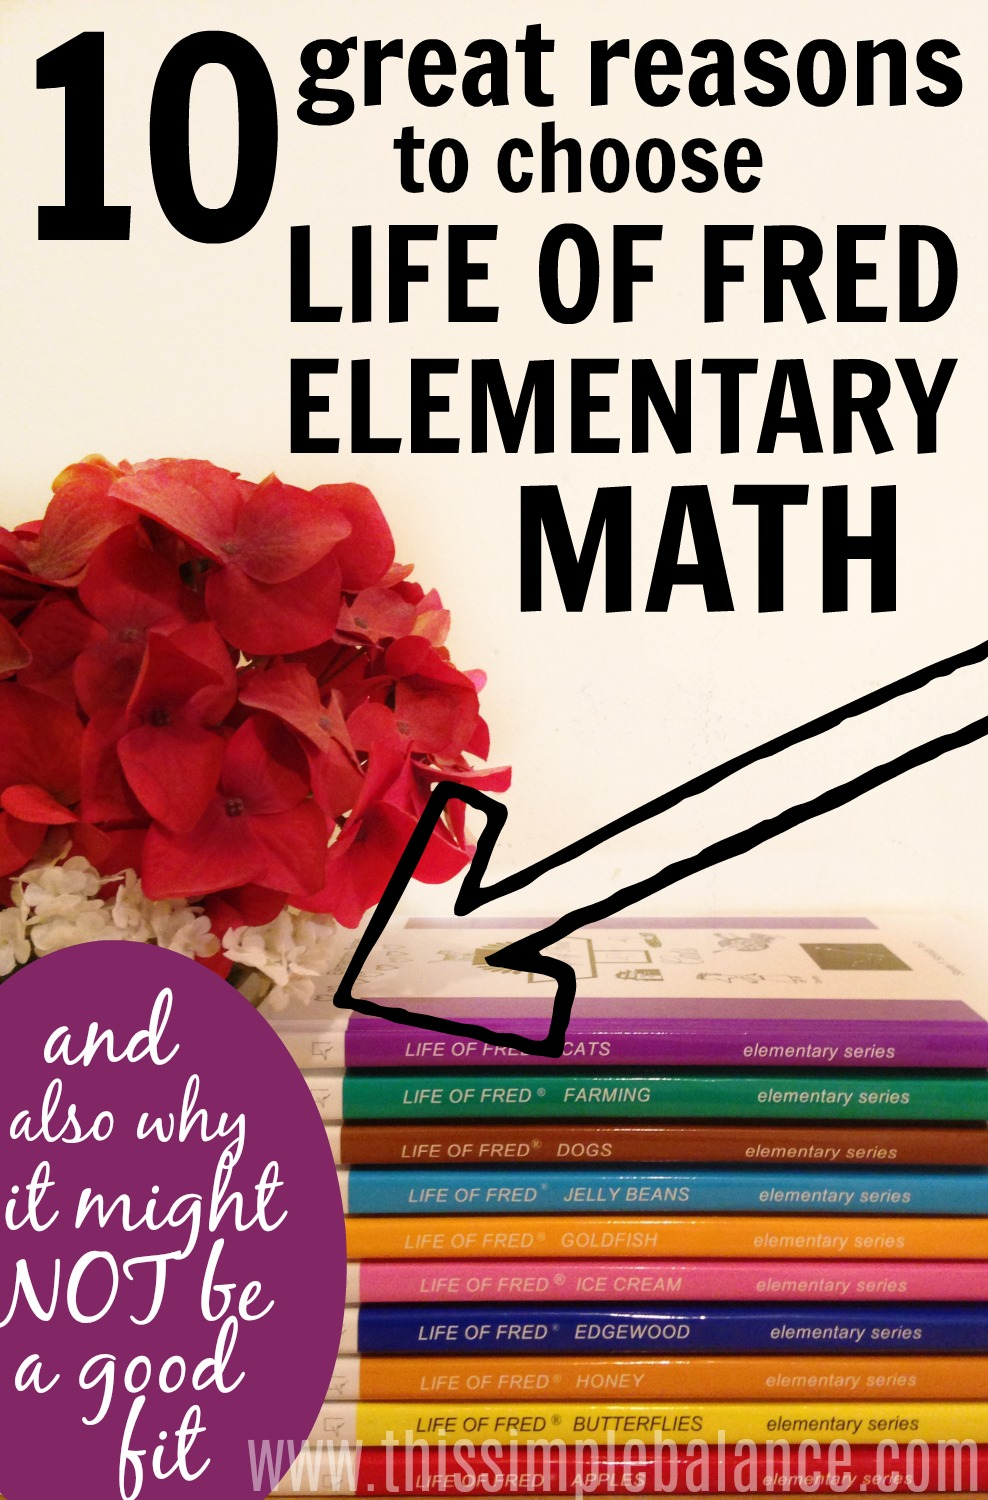 Are you curious about Life of Fred Math, but still skeptical? Life of Fred Elementary Math is our FOURTH homeschool math curriculum in three years of homeschooling, and I absolutely LOVE it! That being said, I know it is NOT for everyone. Read 10 great reasons TO choose Life of Fred math as your homeschool math curriculum, but also why it might not be the best fit for your homeschool. #homeschoolmathcurriculum #lifeoffredmath #curriculumreview